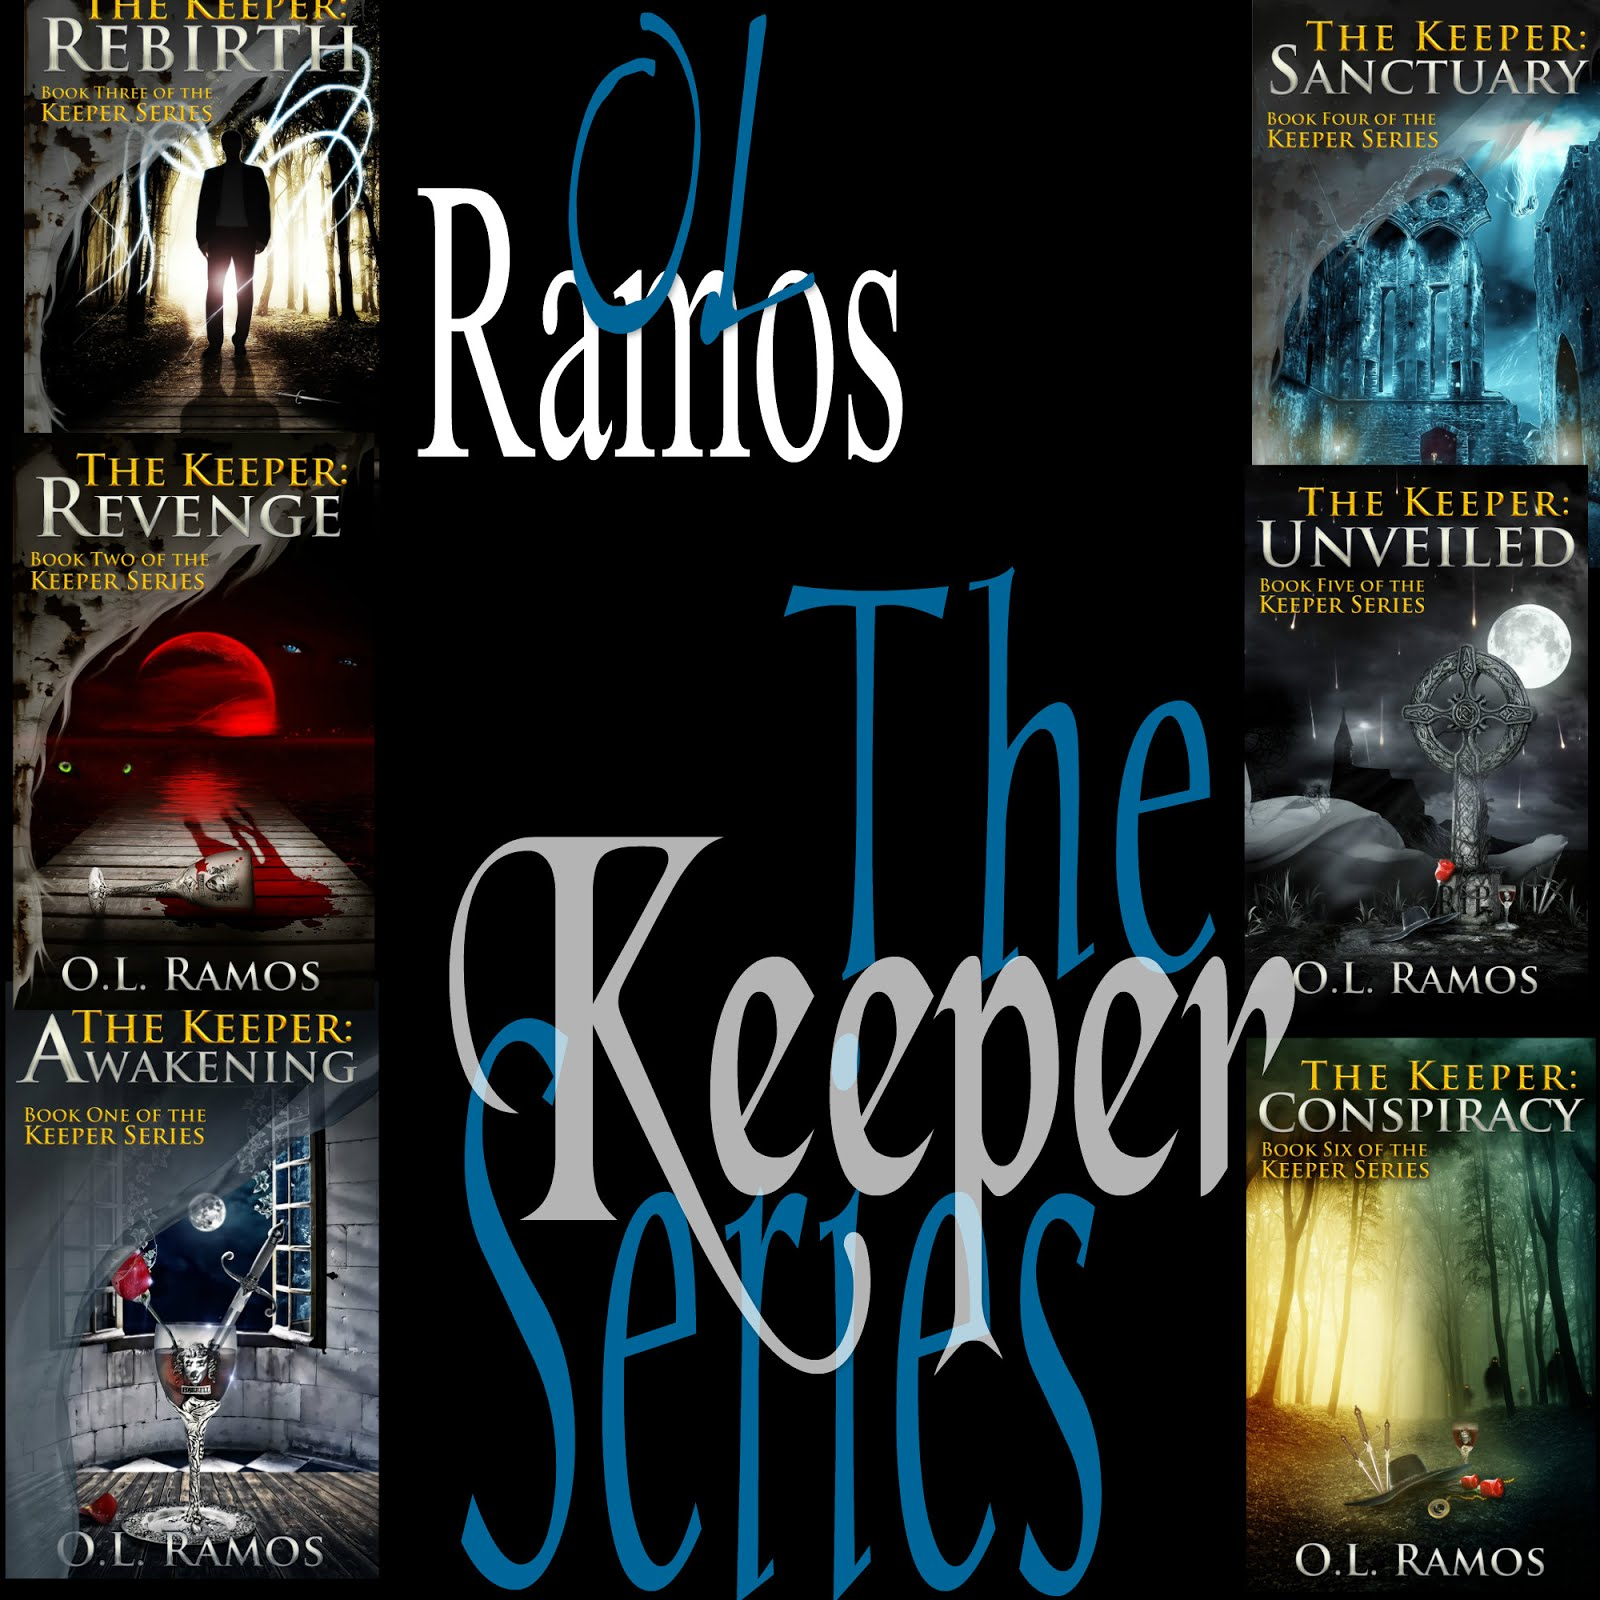 The Keeper Series